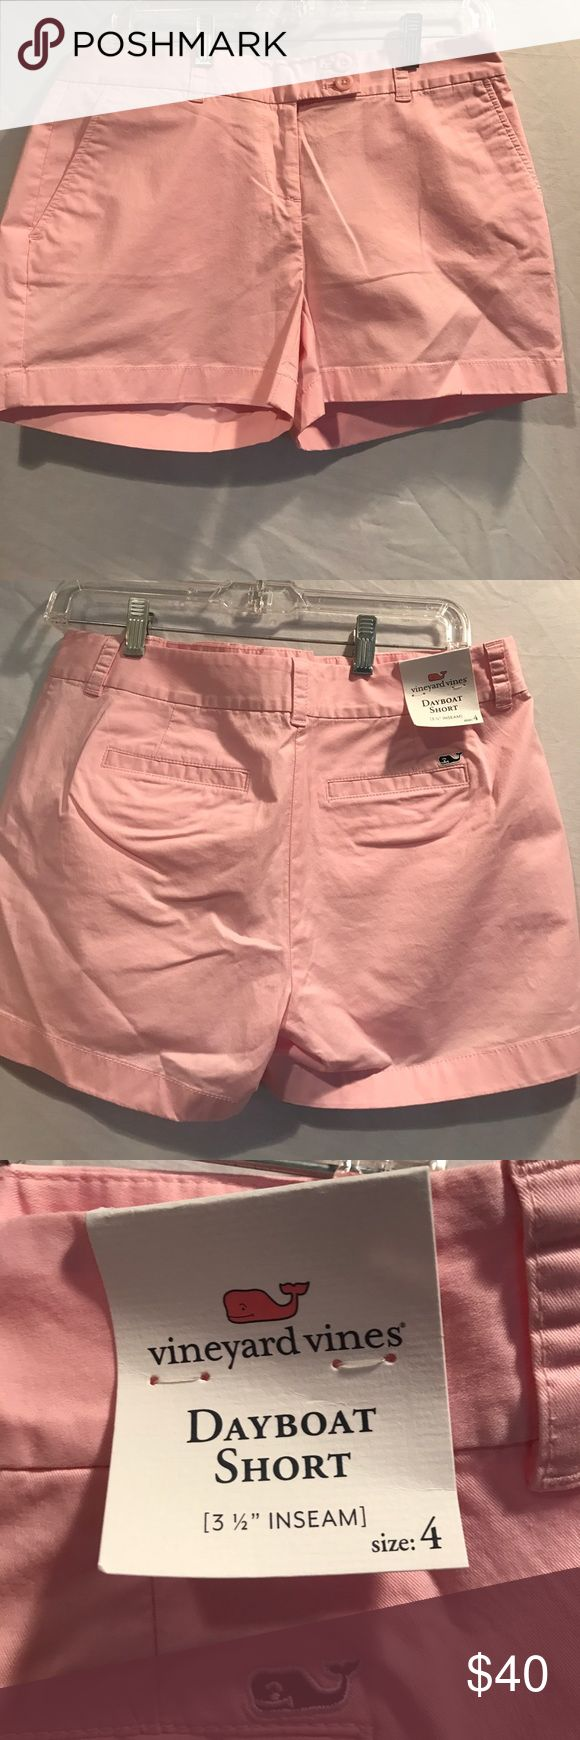 Vineyard Vines dayboat shorts Vineyard Vines Dayboat shorts. New with tags! Color-light pink. Size-4 Vineyard Vines Shorts